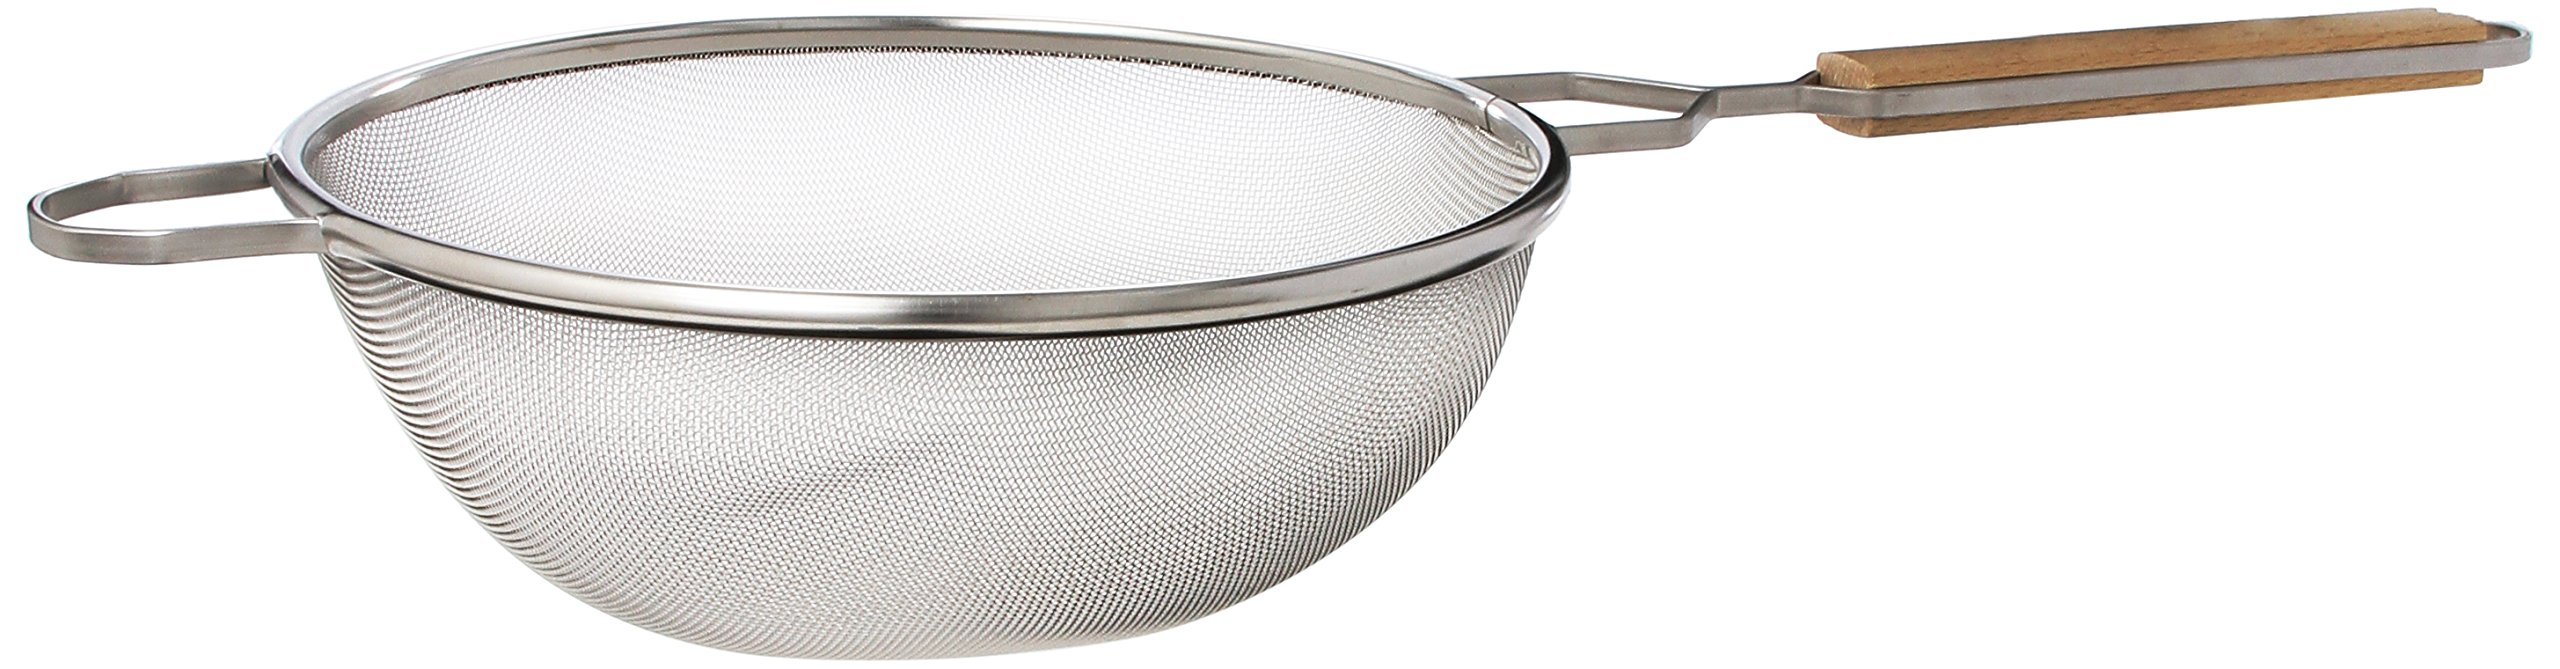 Crestware 10-1/4-Inch Fine Single Mesh Strainer